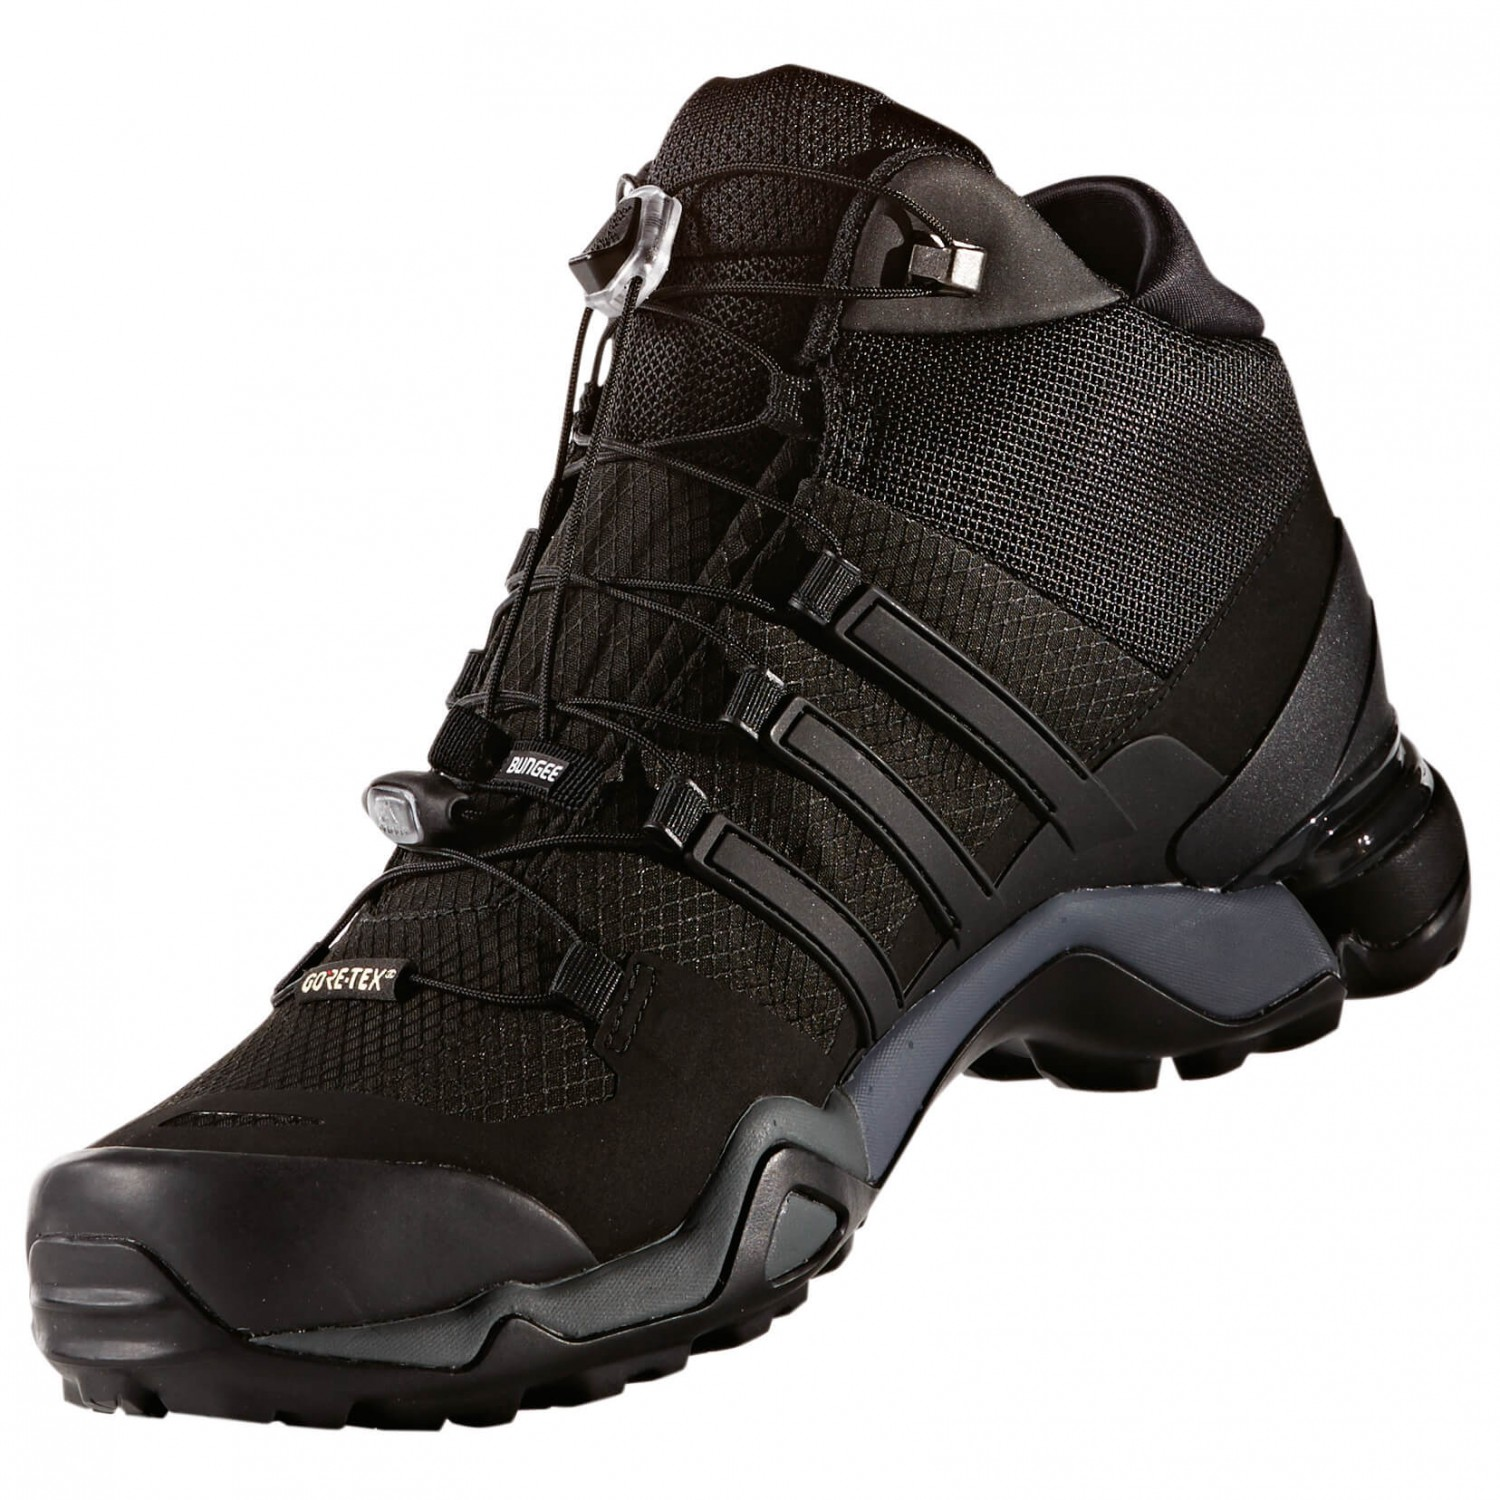 Adidas Winter Hiking Shoes